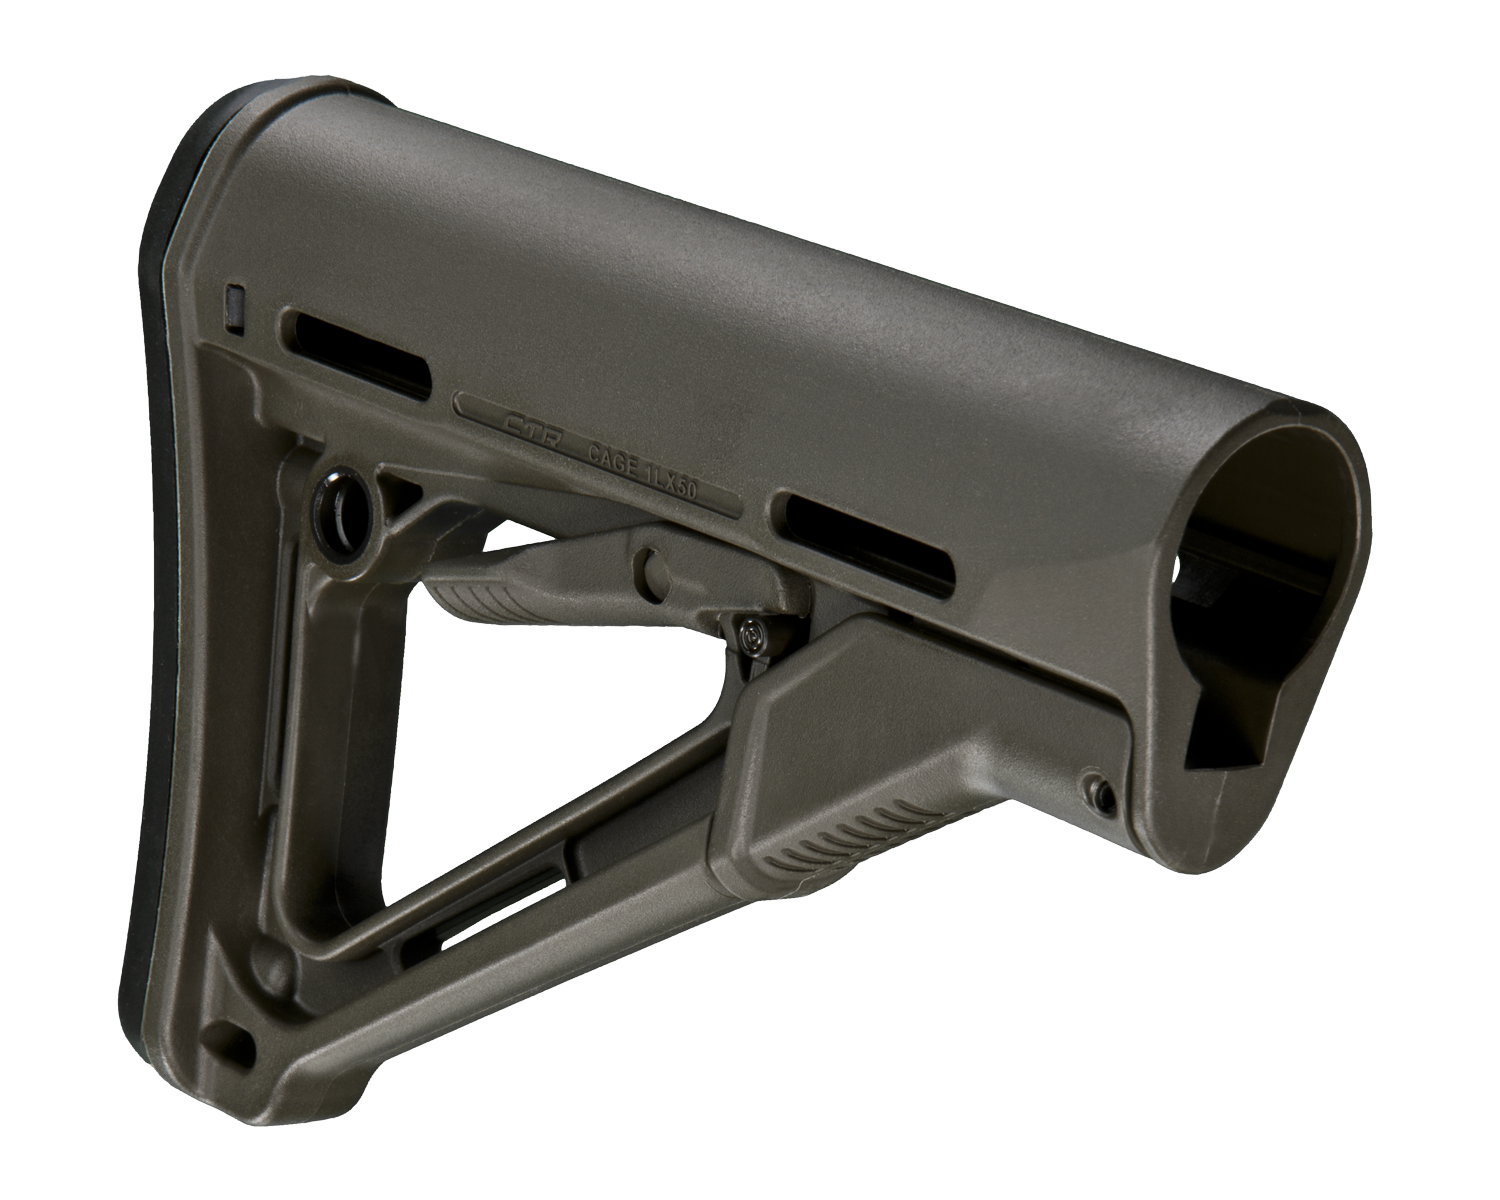 Magpul CTR Stock - MIL SPEC - main